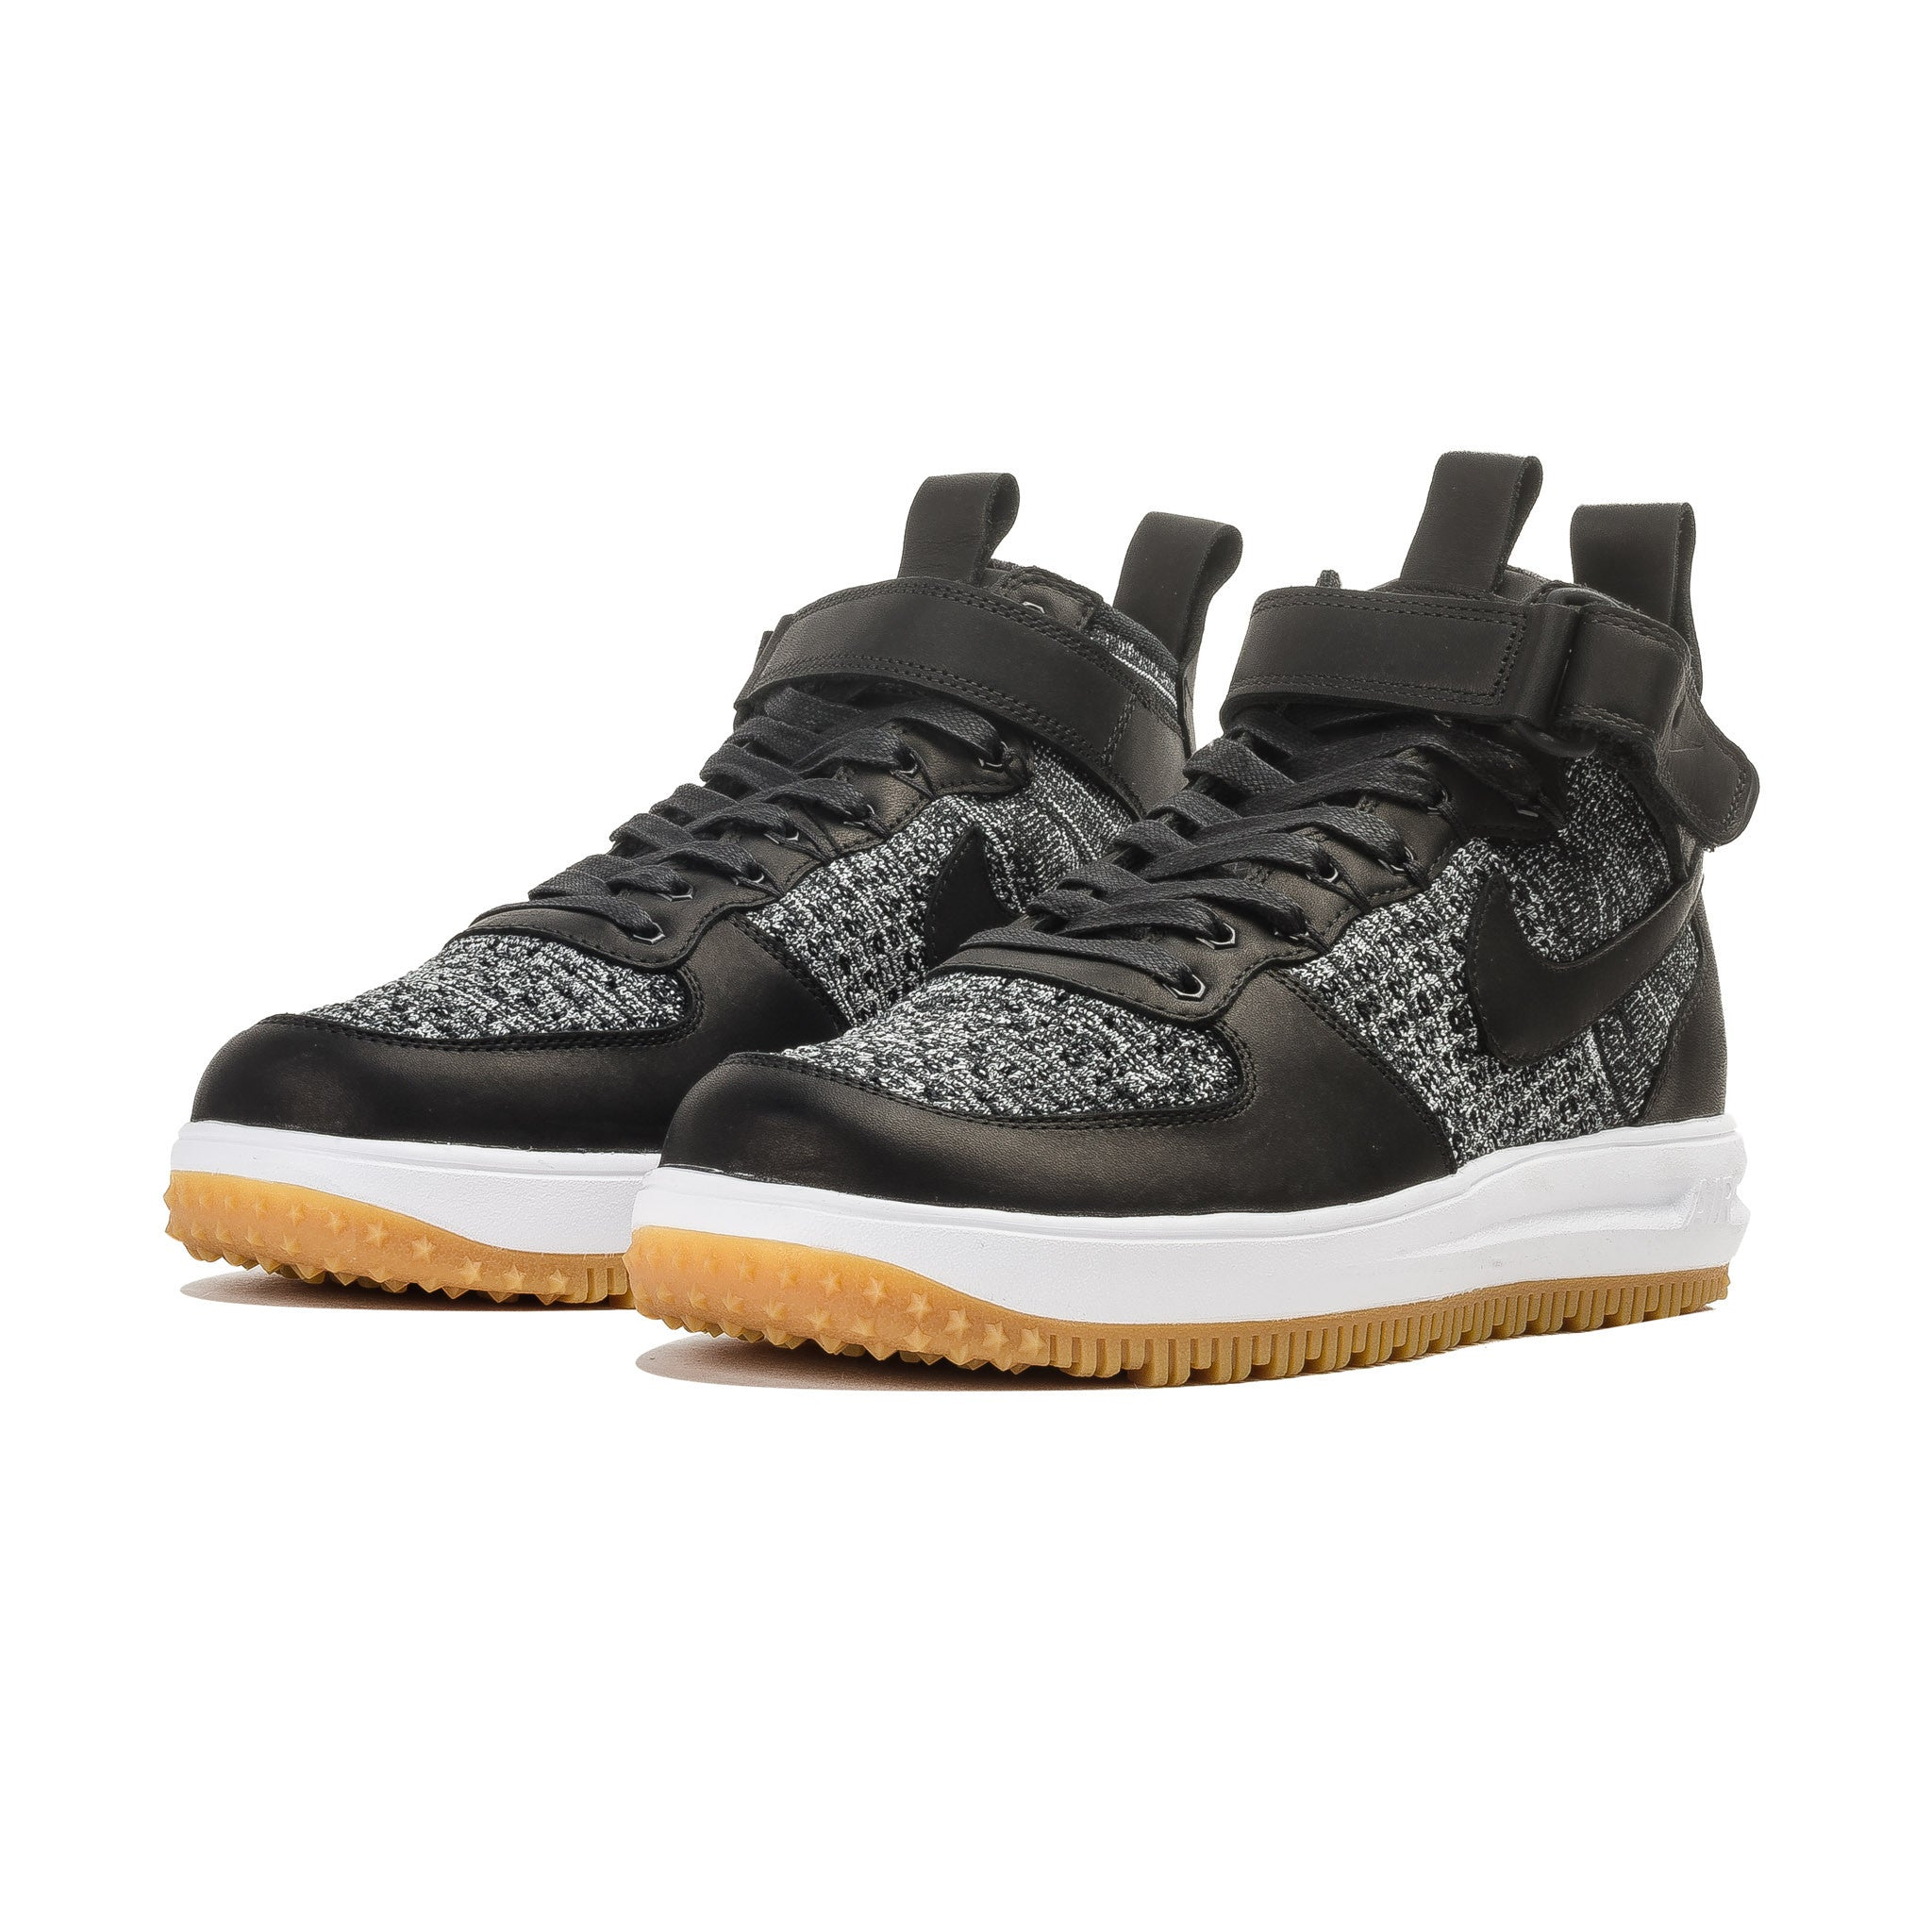 Lunar Force 1 FK Workboot 855984-001